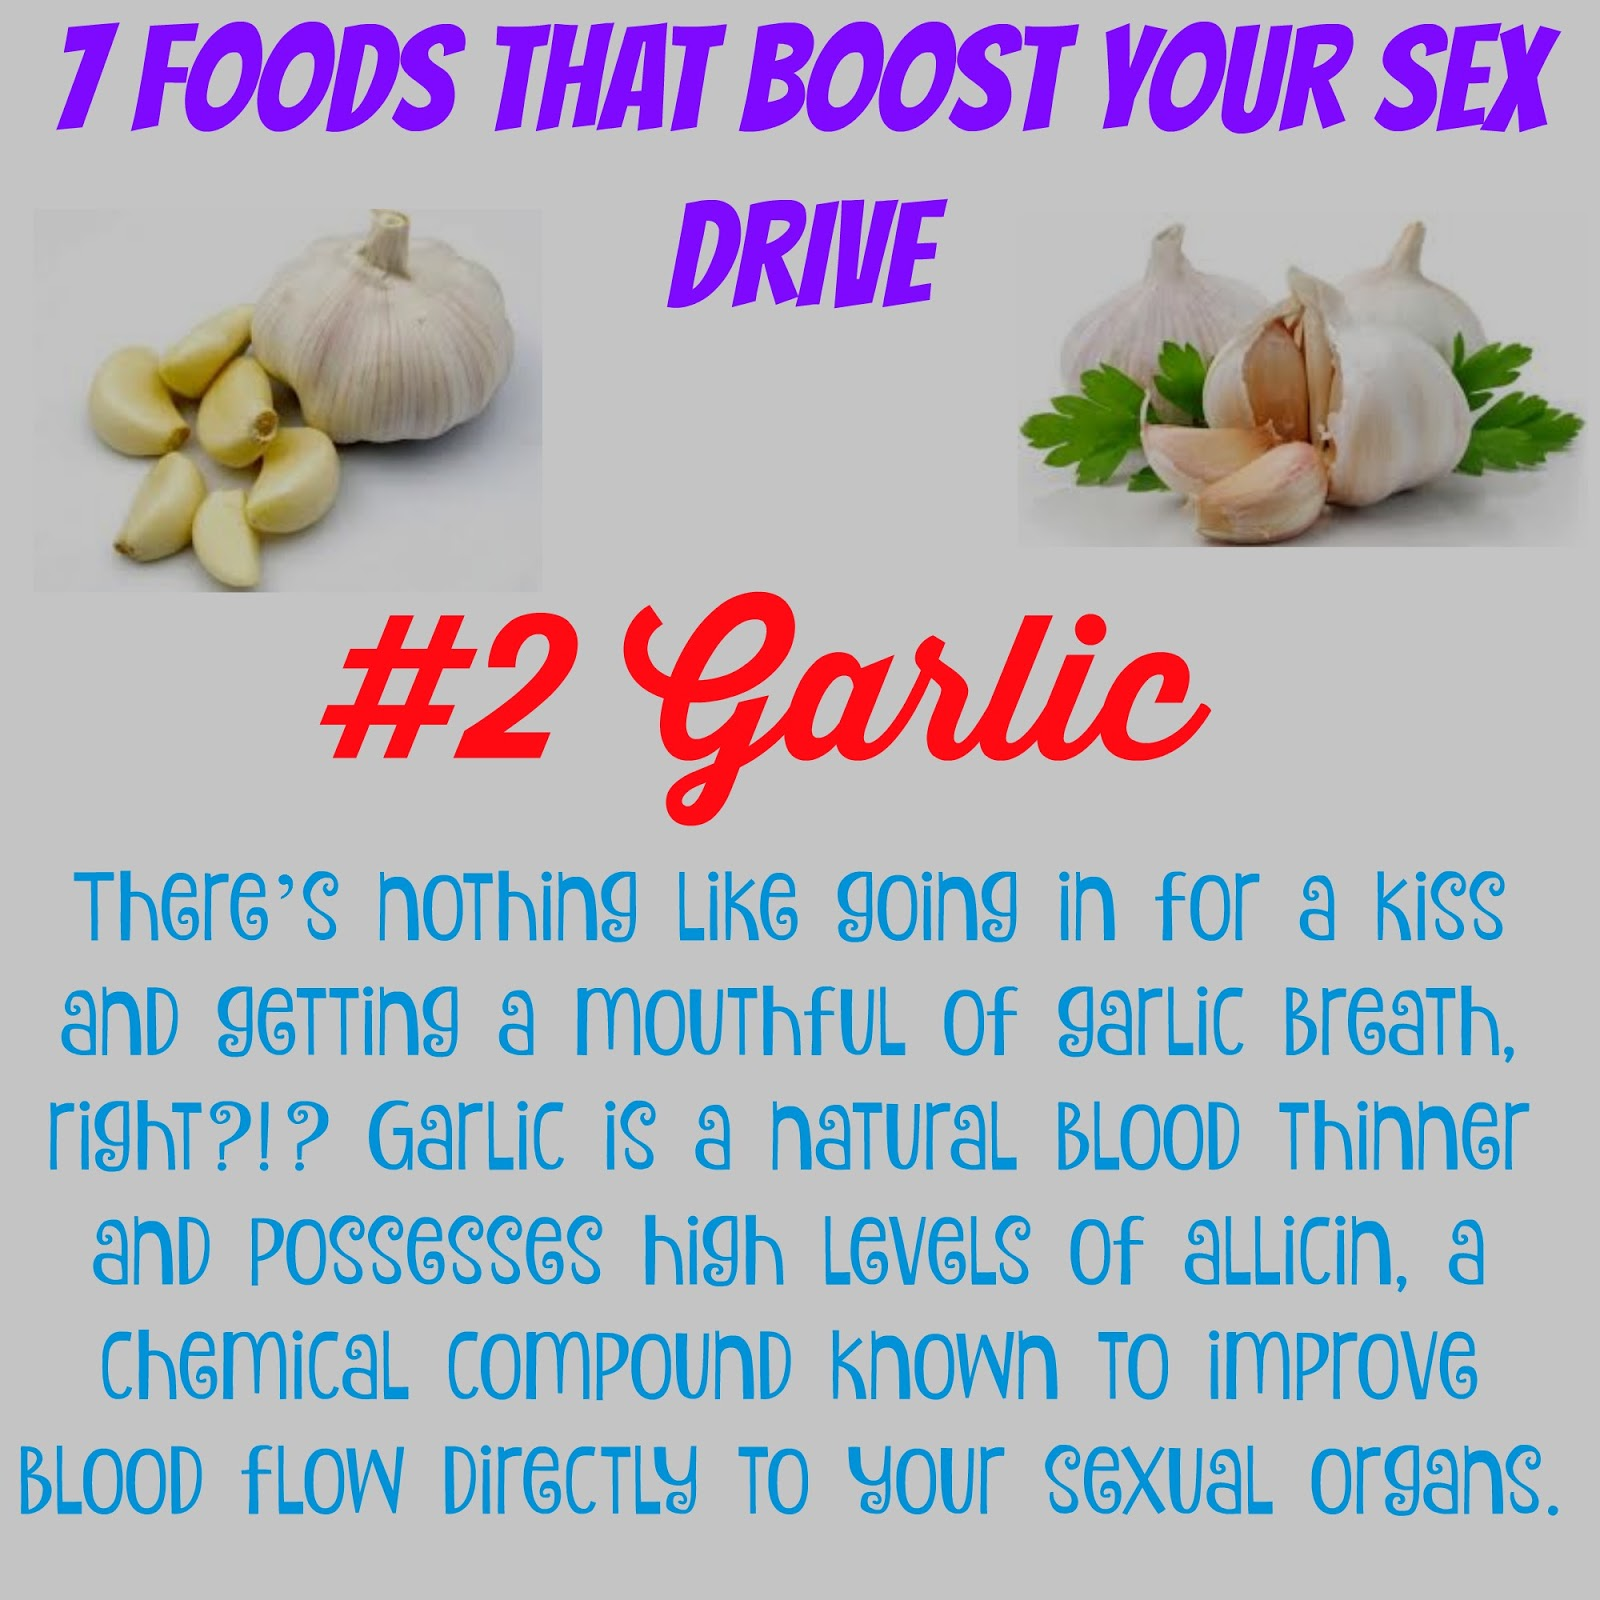 Is garlic good for sex